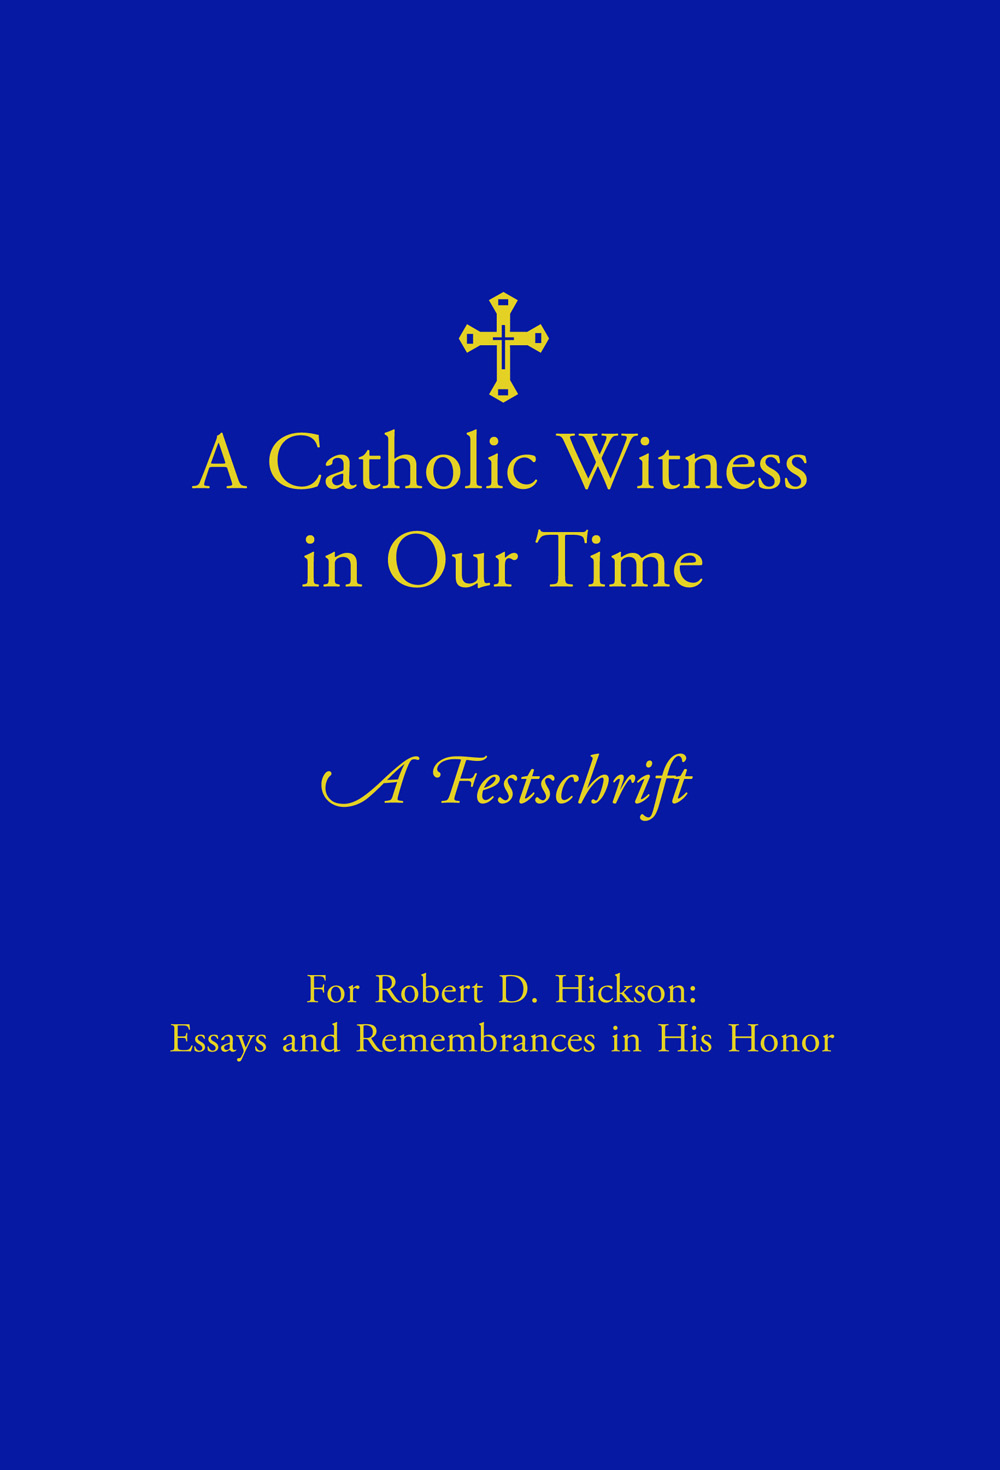 a catholic witness in our time a festschrift in honor of dr a catholic witness in our time a festschrift in honor of dr robert hickson